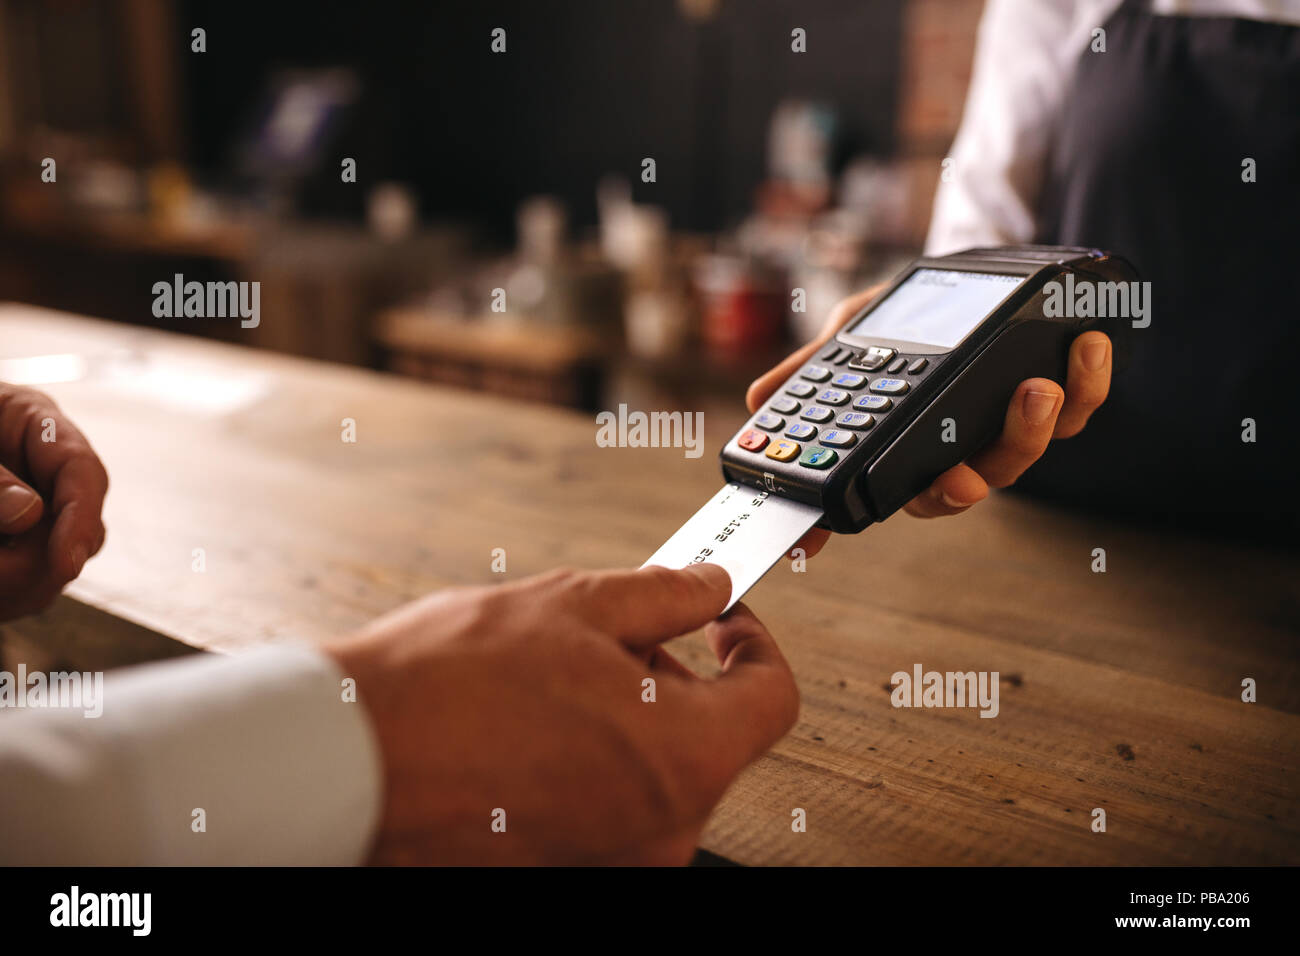 Customer inserting his credit card in the machine to payment at cafe. Customer paying for their order with a credit card in a cafe, with bartender hol - Stock Image